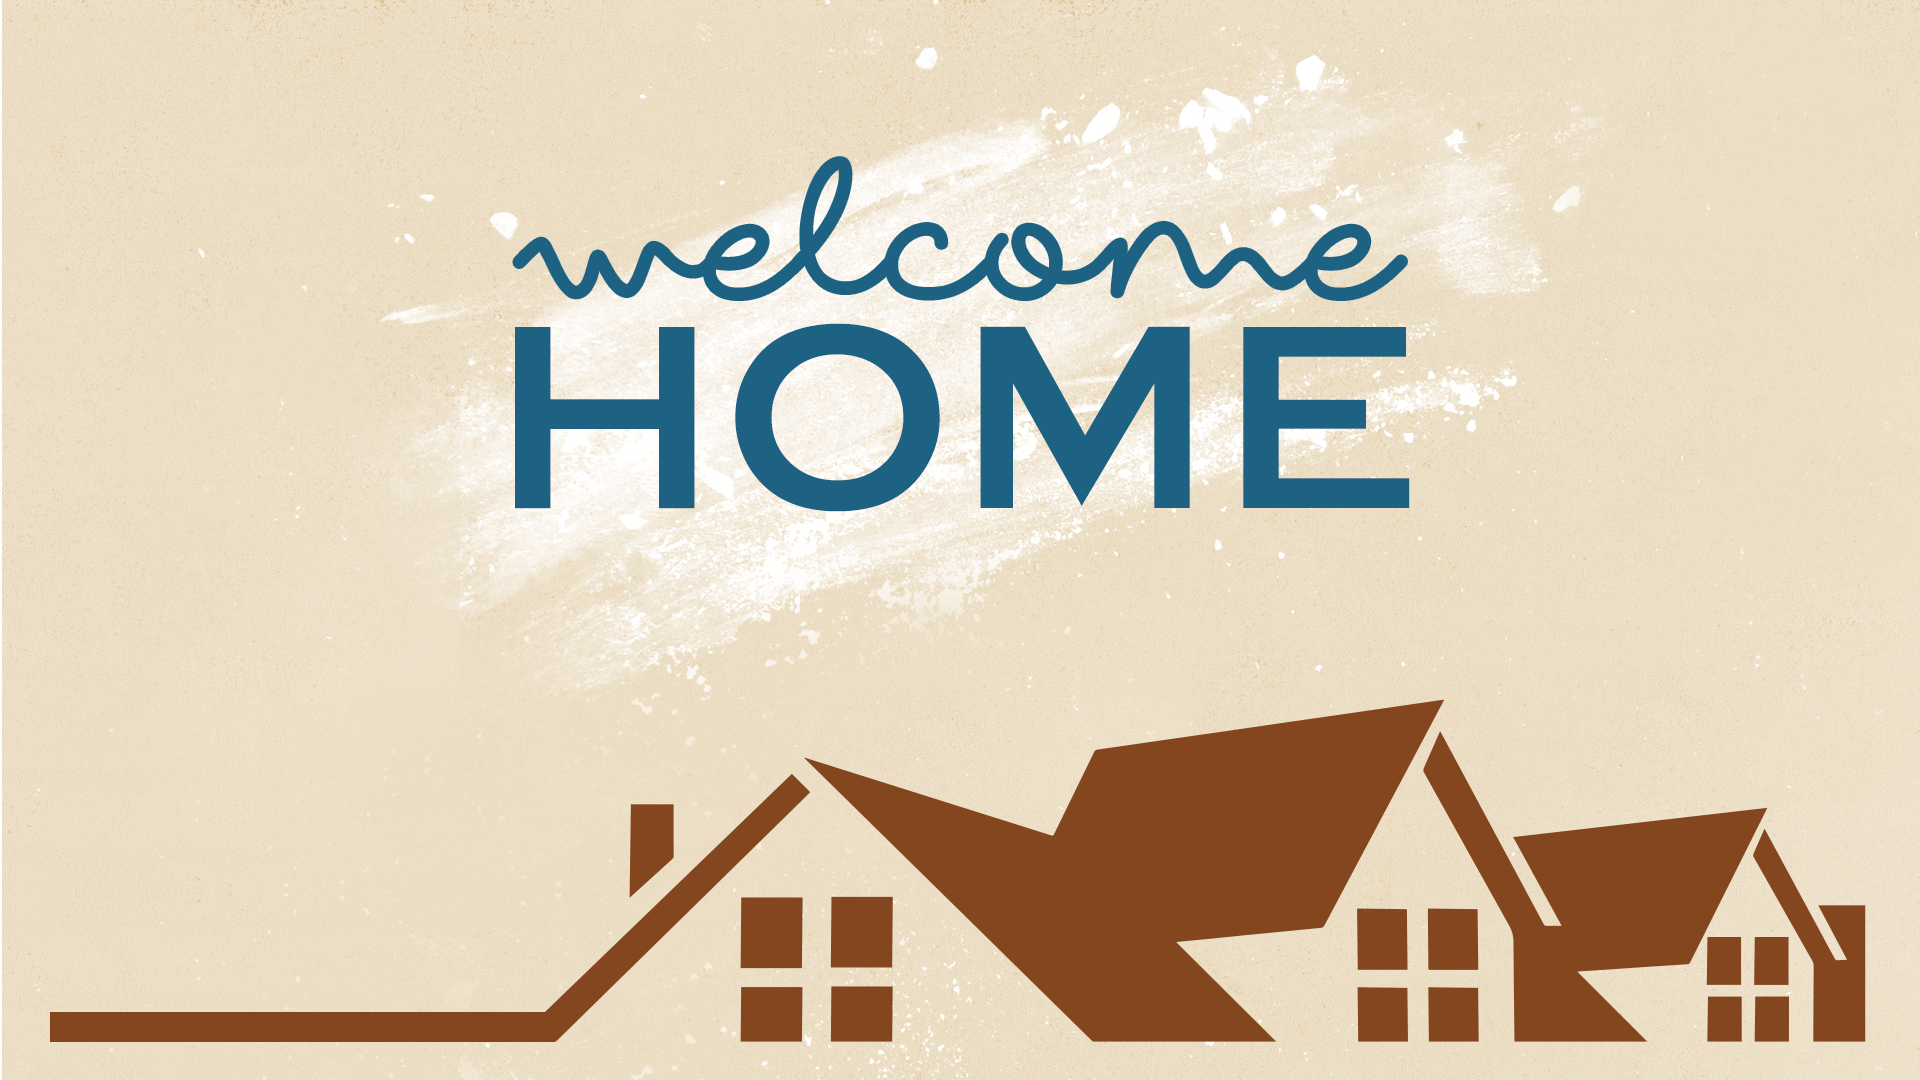 Welcome Home – Church Sermon Series Ideas